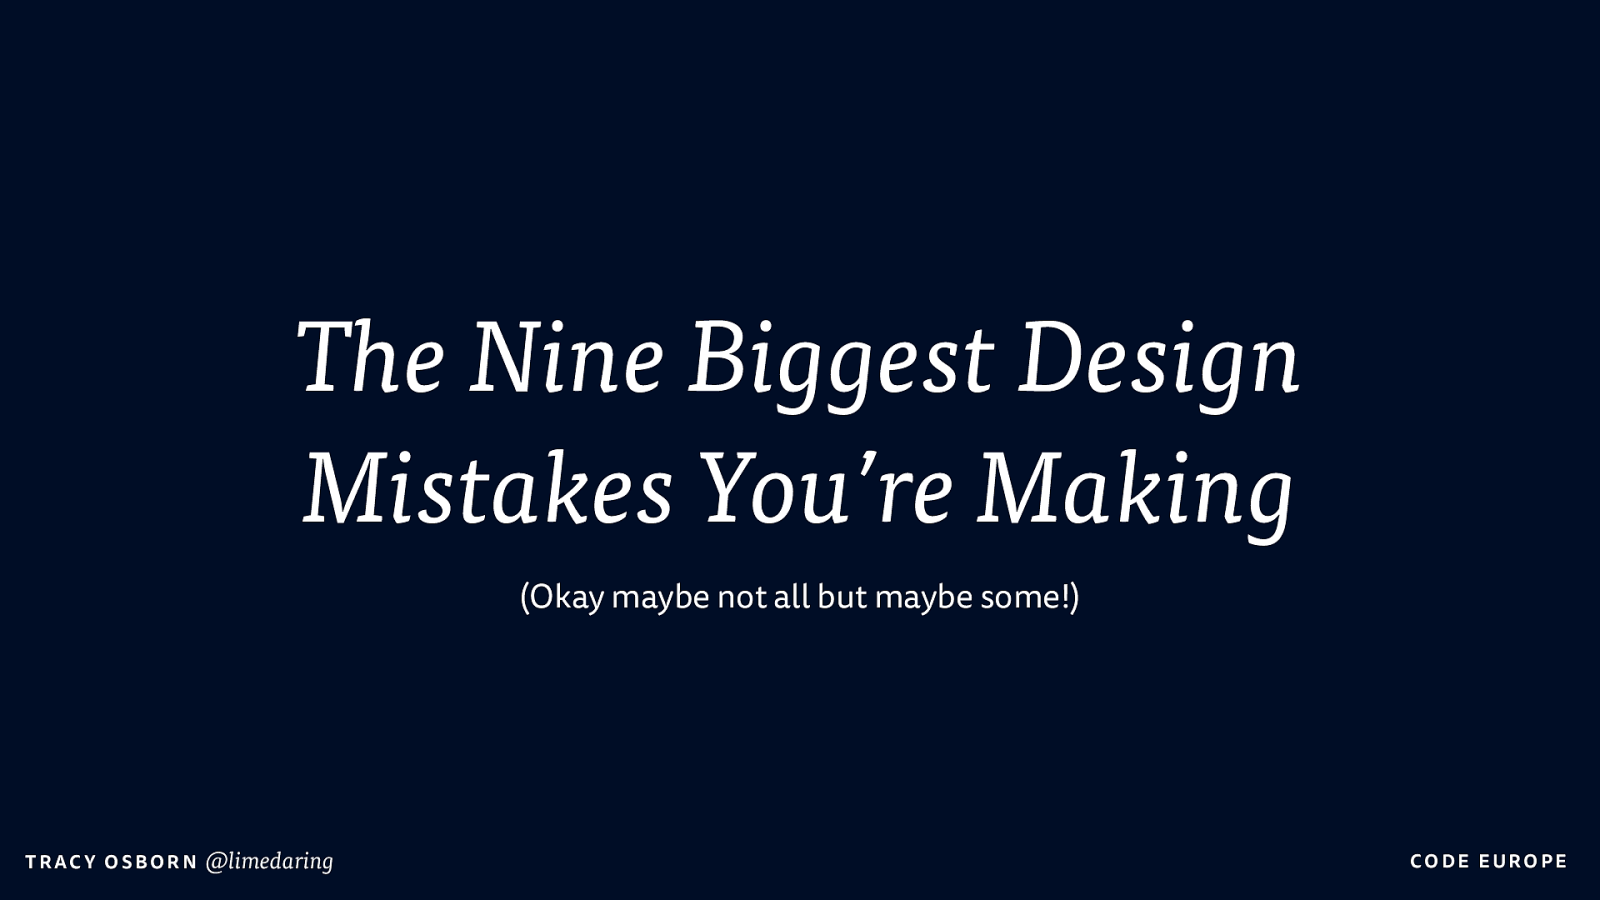 The Nine Biggest Design Mistakes You're Making